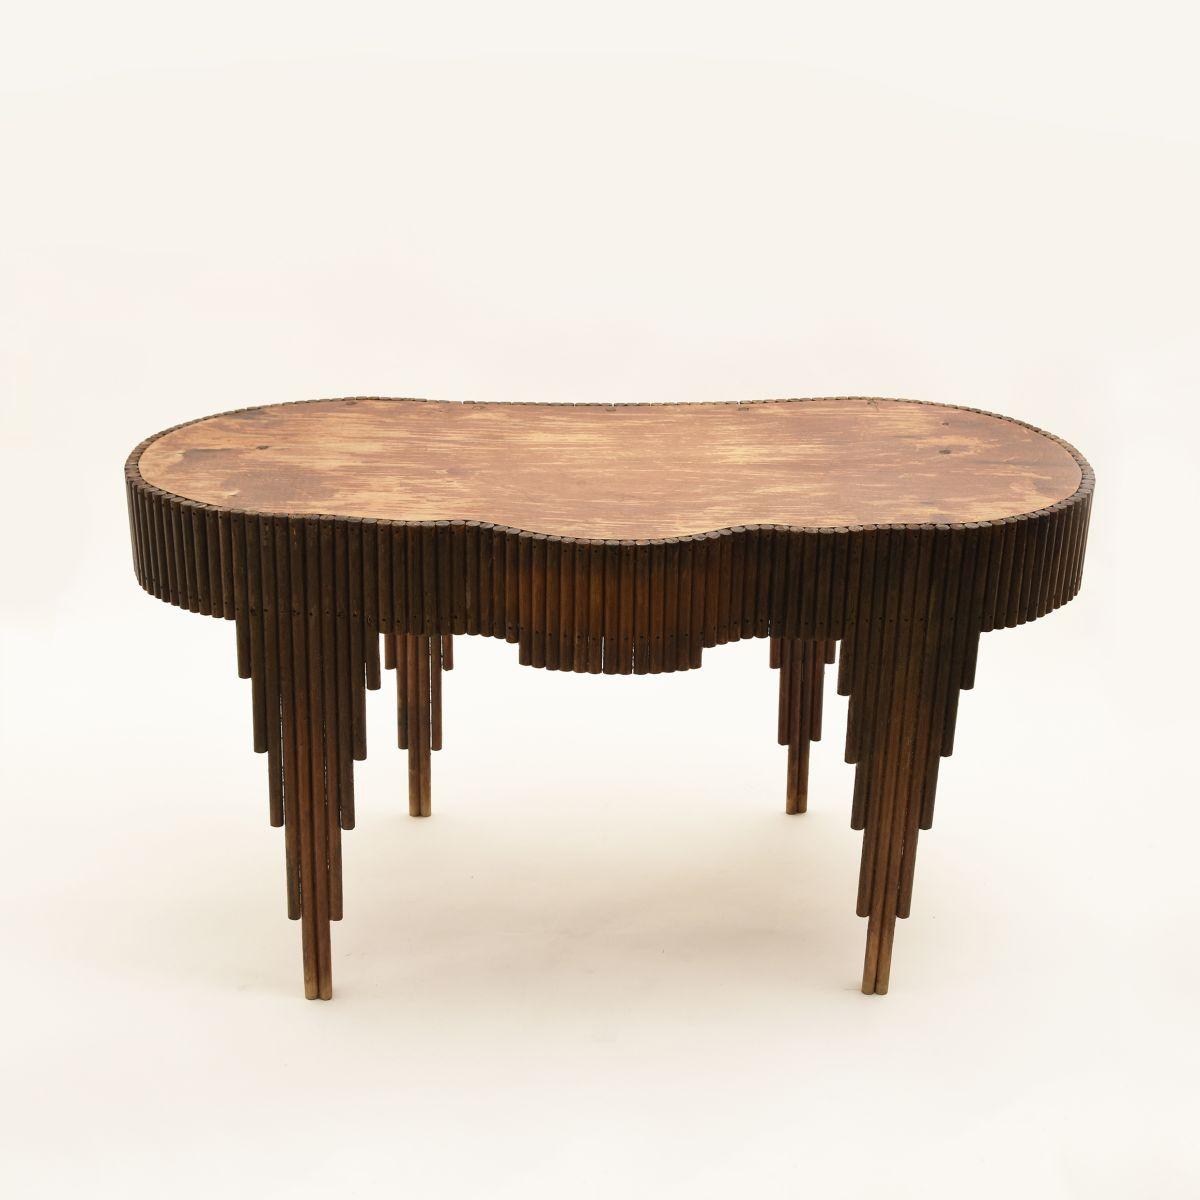 Anonymous-Amoeba-Shaped-Table